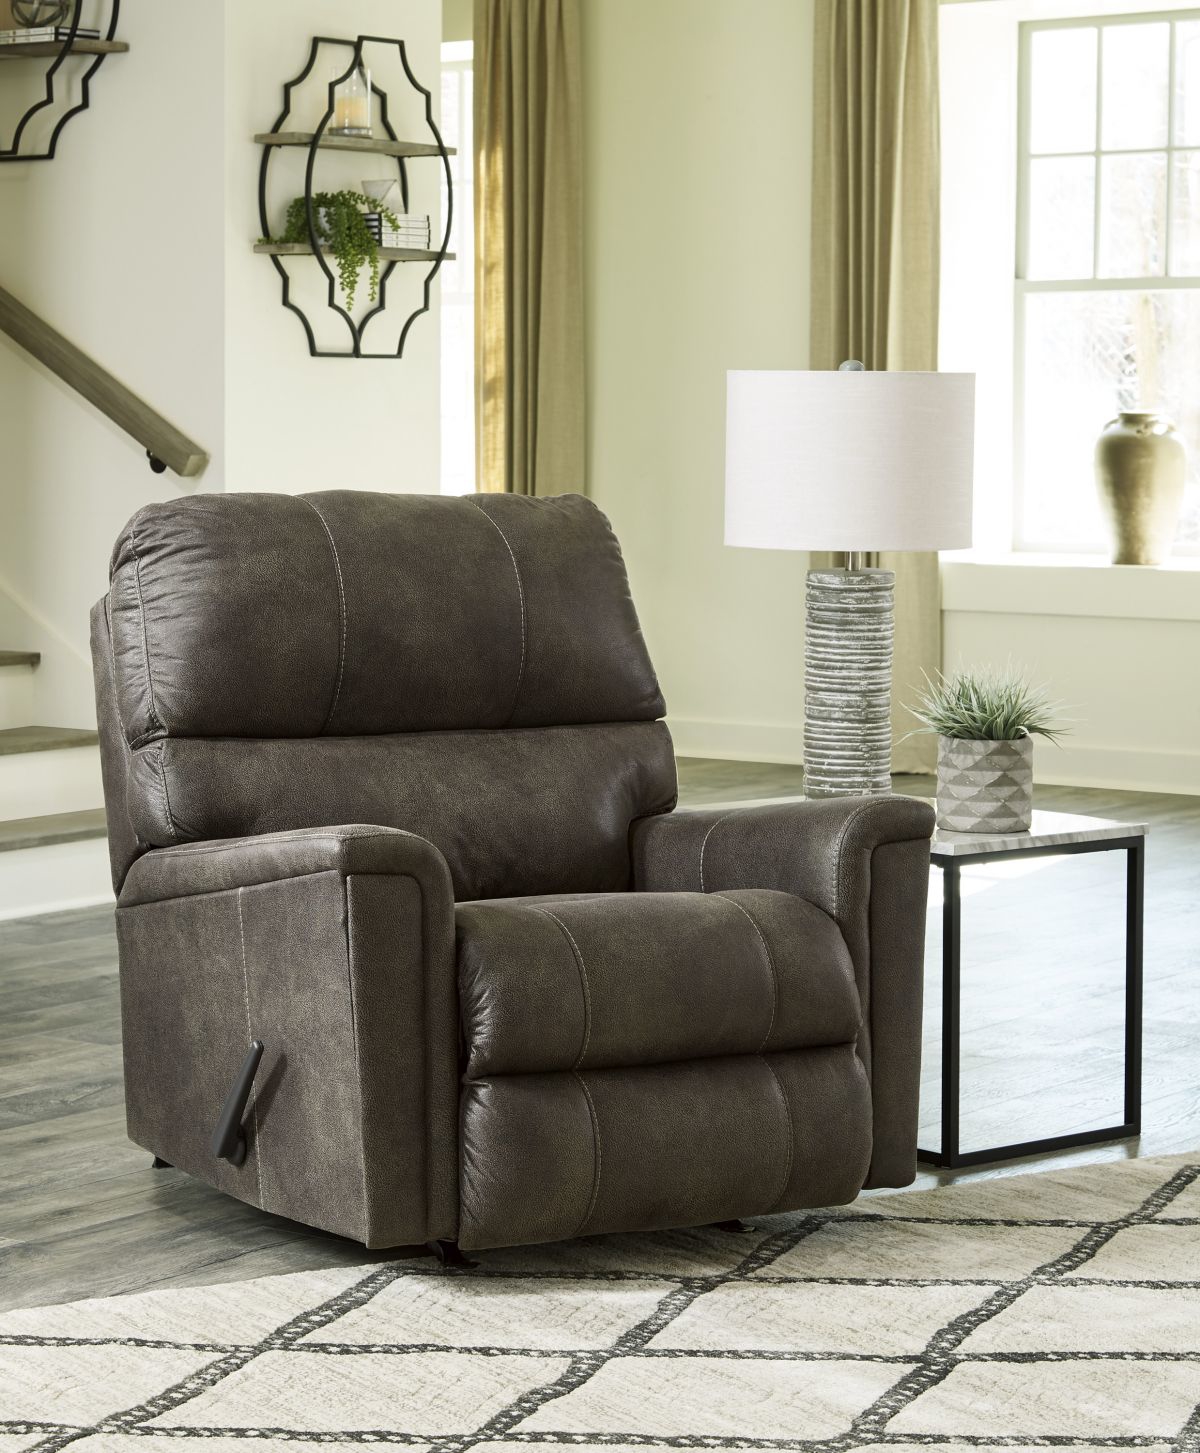 Picture of Navi Recliner